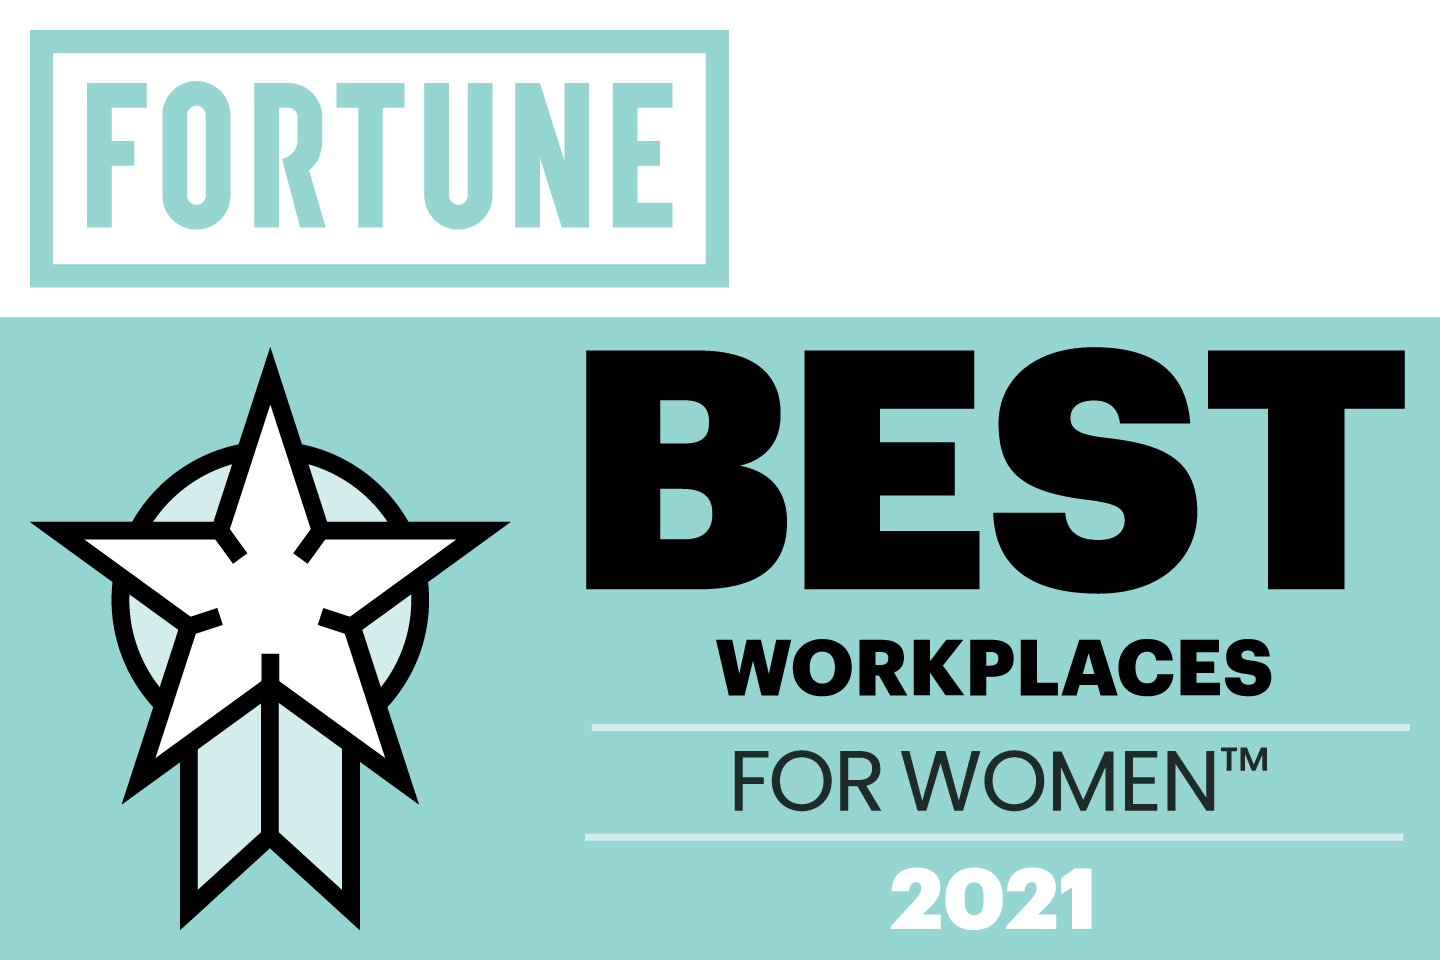 Top Workplace For Women News Post hero image